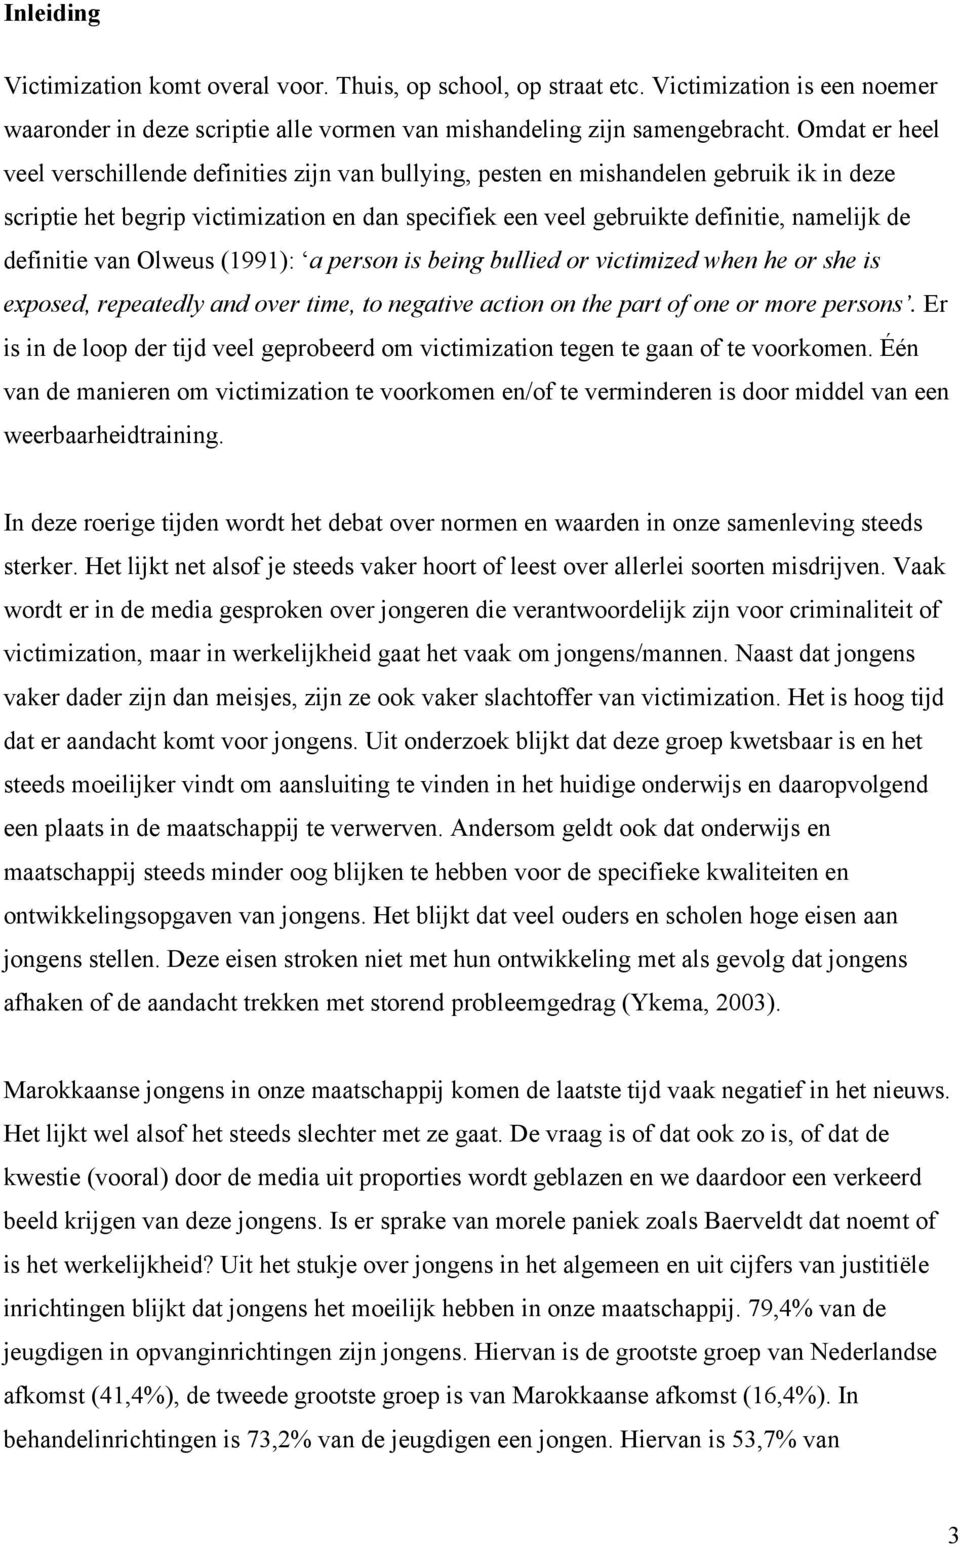 definitie van Olweus (1991): a person is being bullied or victimized when he or she is exposed, repeatedly and over time, to negative action on the part of one or more persons.